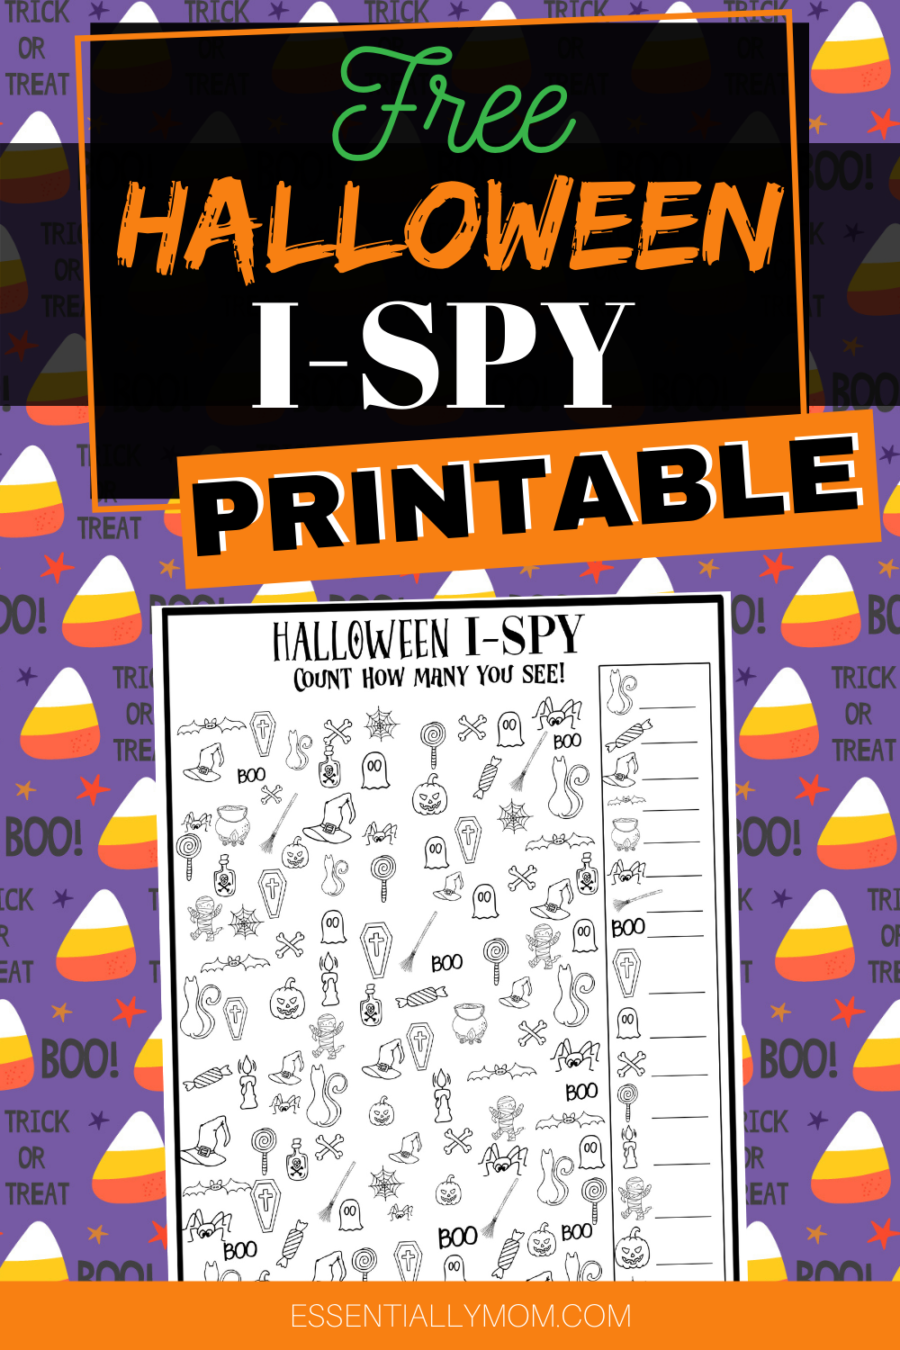 halloween i spy printable, halloween i spy for kids,halloween kids printables,i spy printable halloween,printable halloween stuff,printable activities halloween,printable halloween ideas